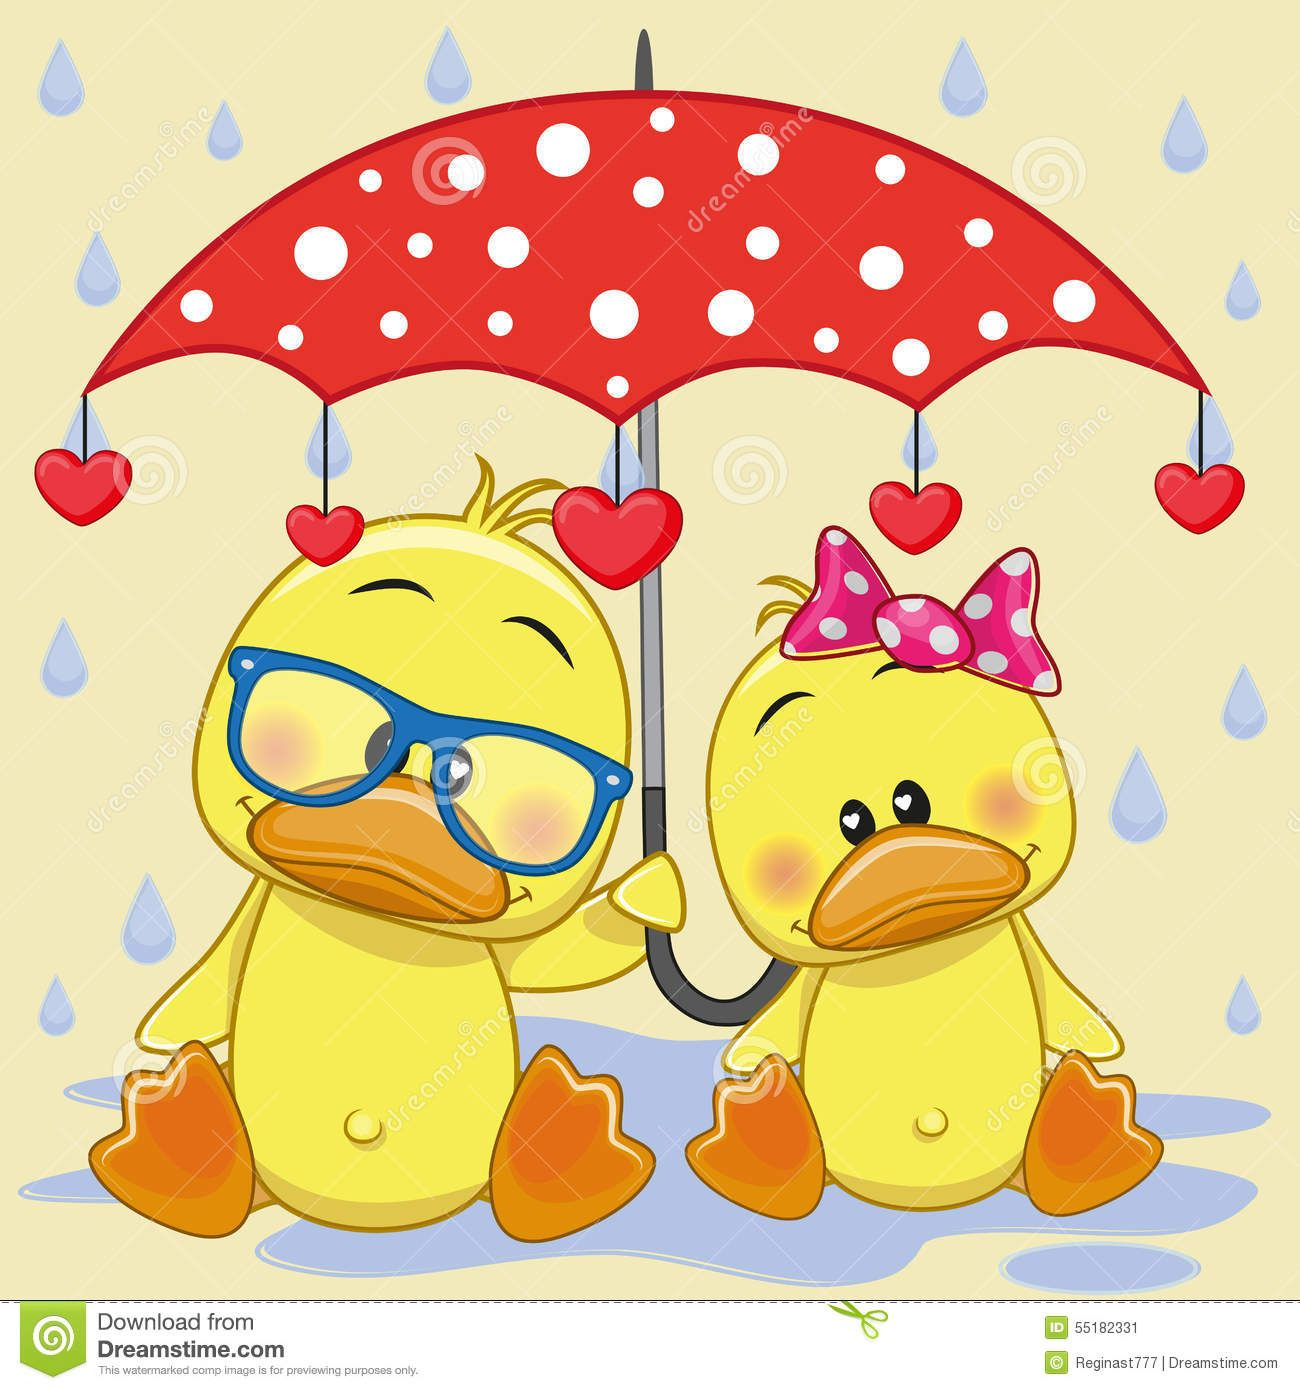 Two Ducks With Umbrella - Download From Over 49 Million High Quality ...